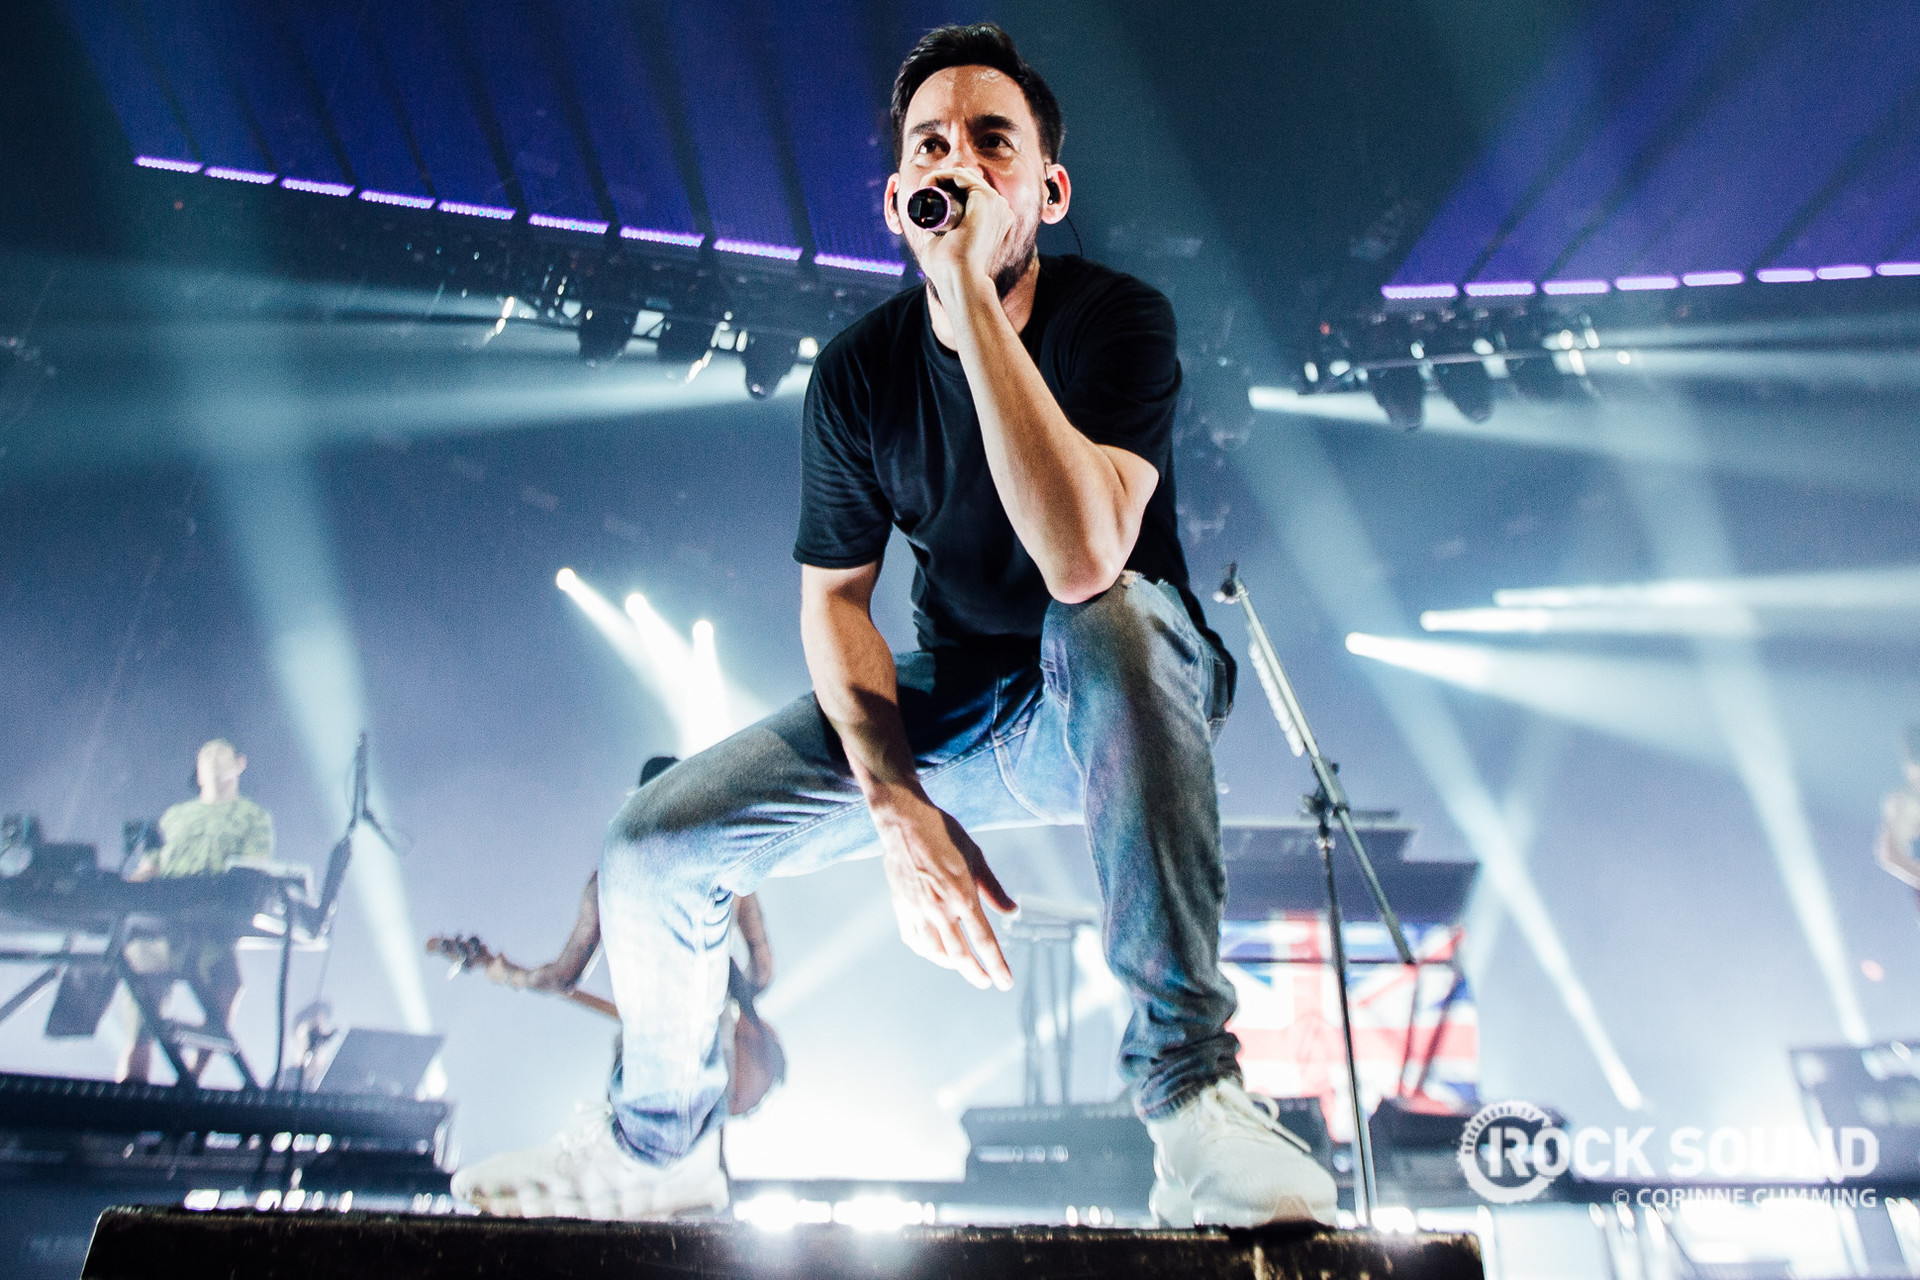 Linkin Park's Mike Shinoda Drops 'Post Traumatic' EP